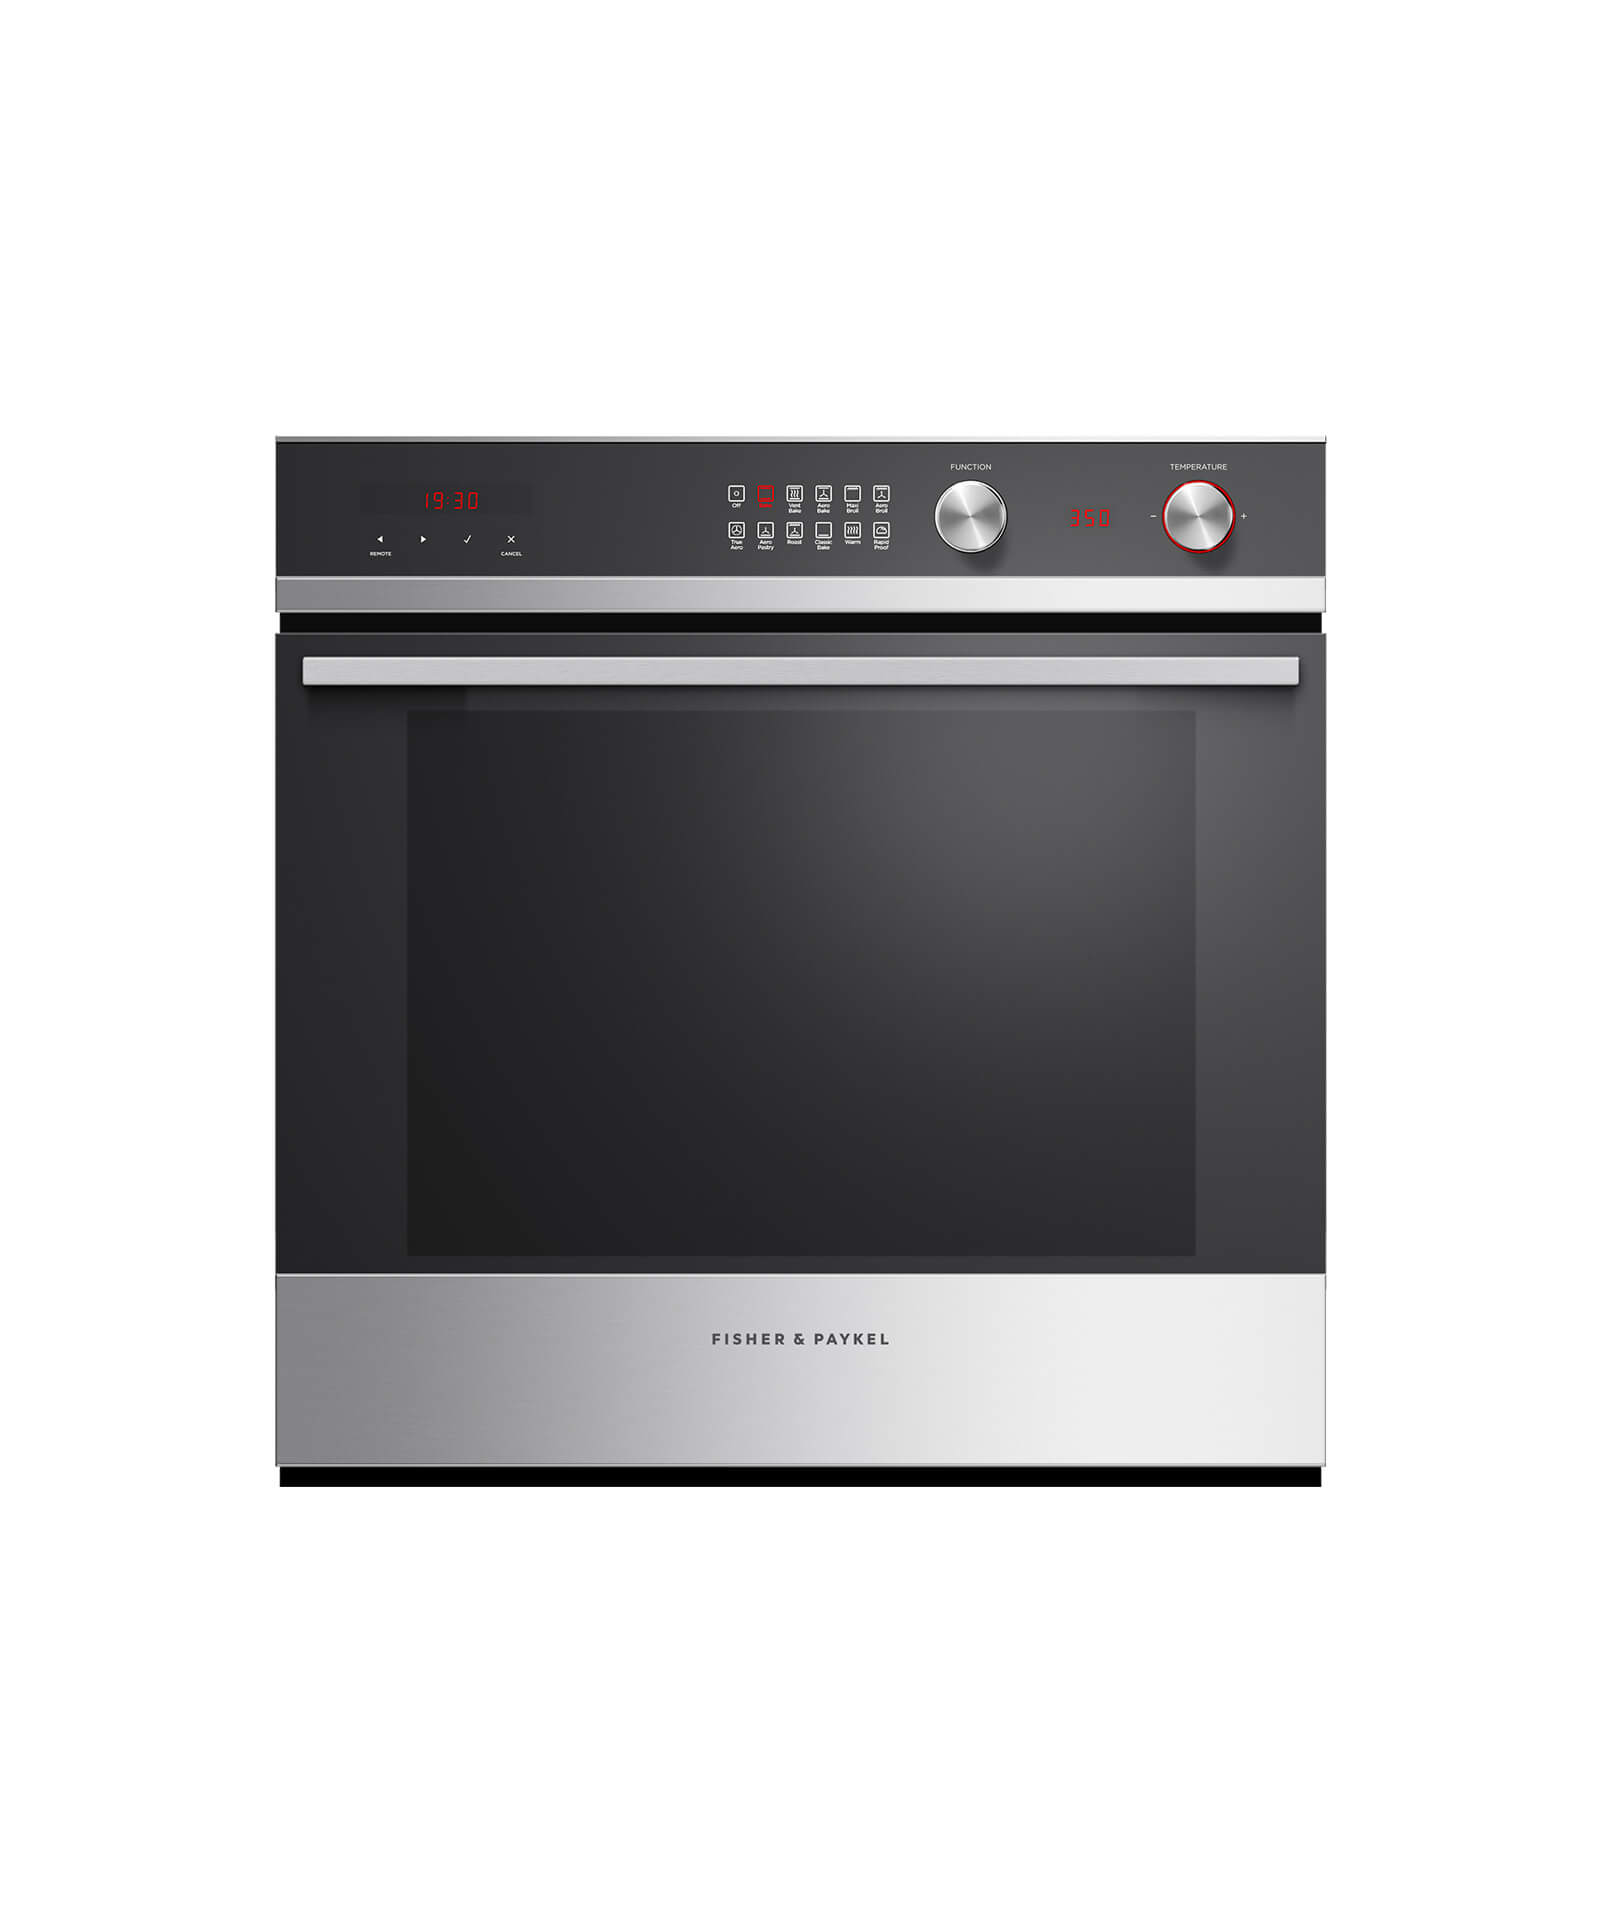 """Model: OB24SCDEX1   Fisher and Paykel Built-in Oven, 24"""", 3 cu ft, 11 Function"""